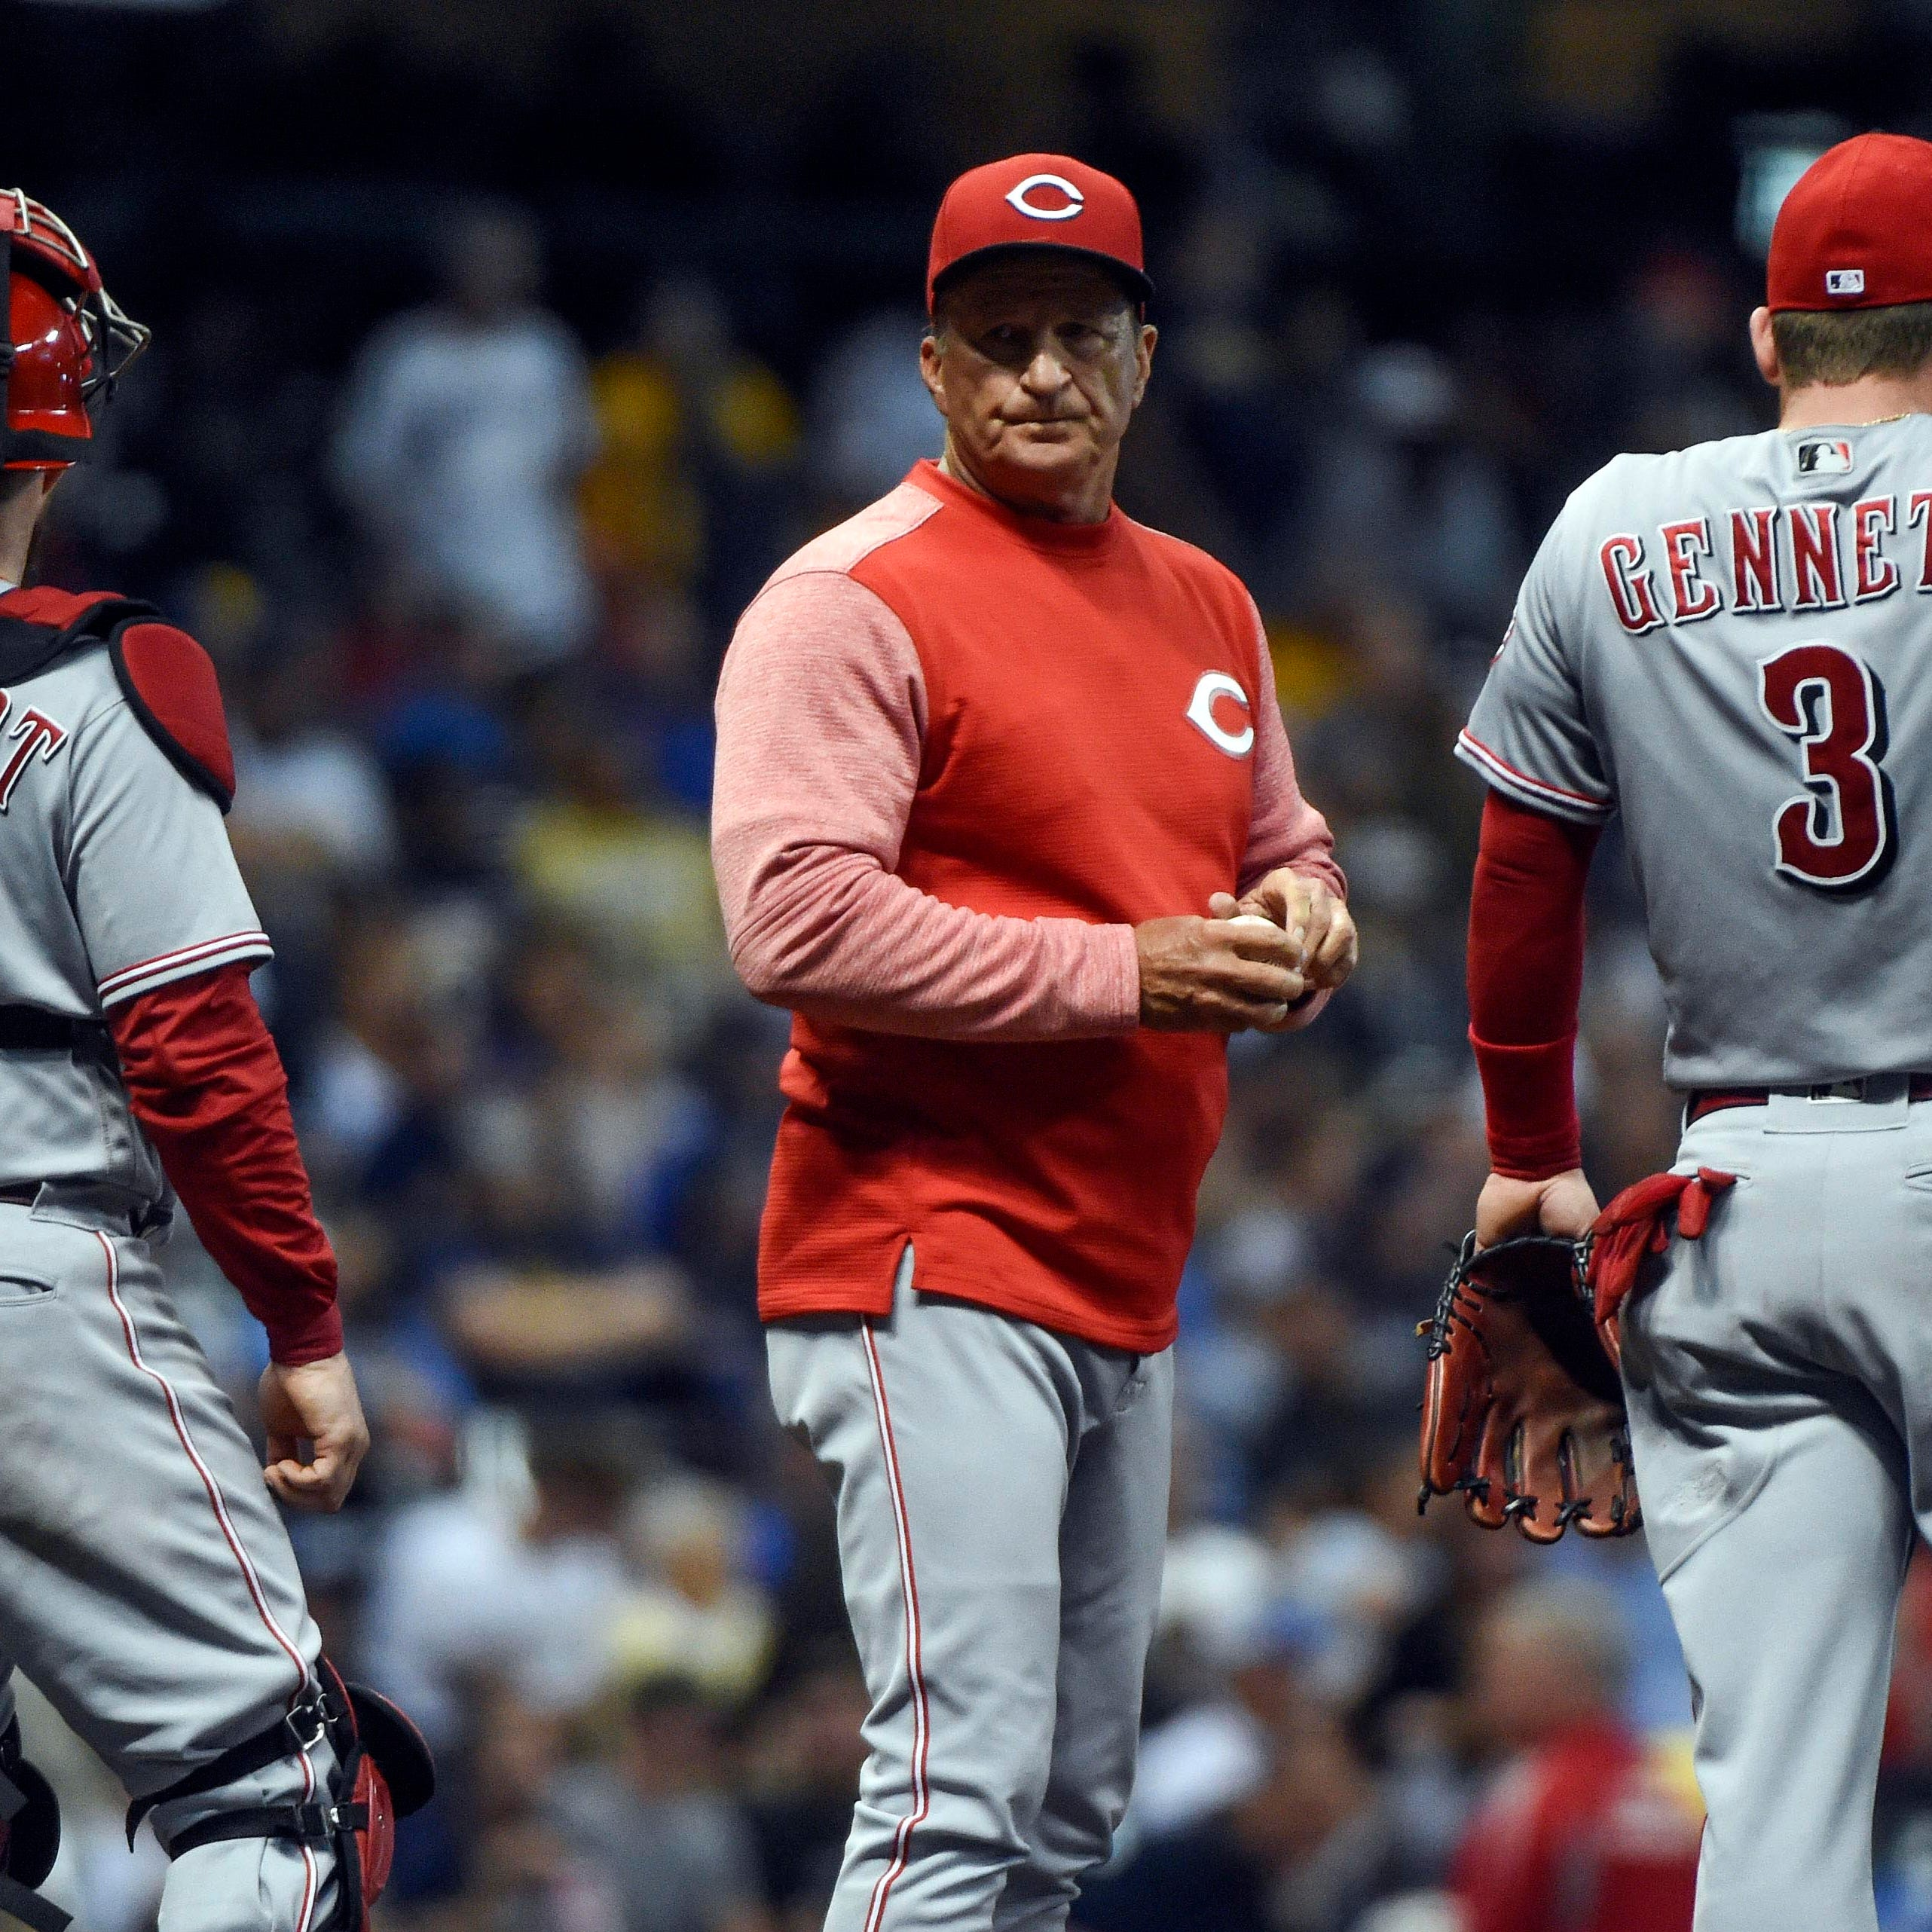 Mosquitoes are a nuisance for Cincinnati Reds players in Milwaukee